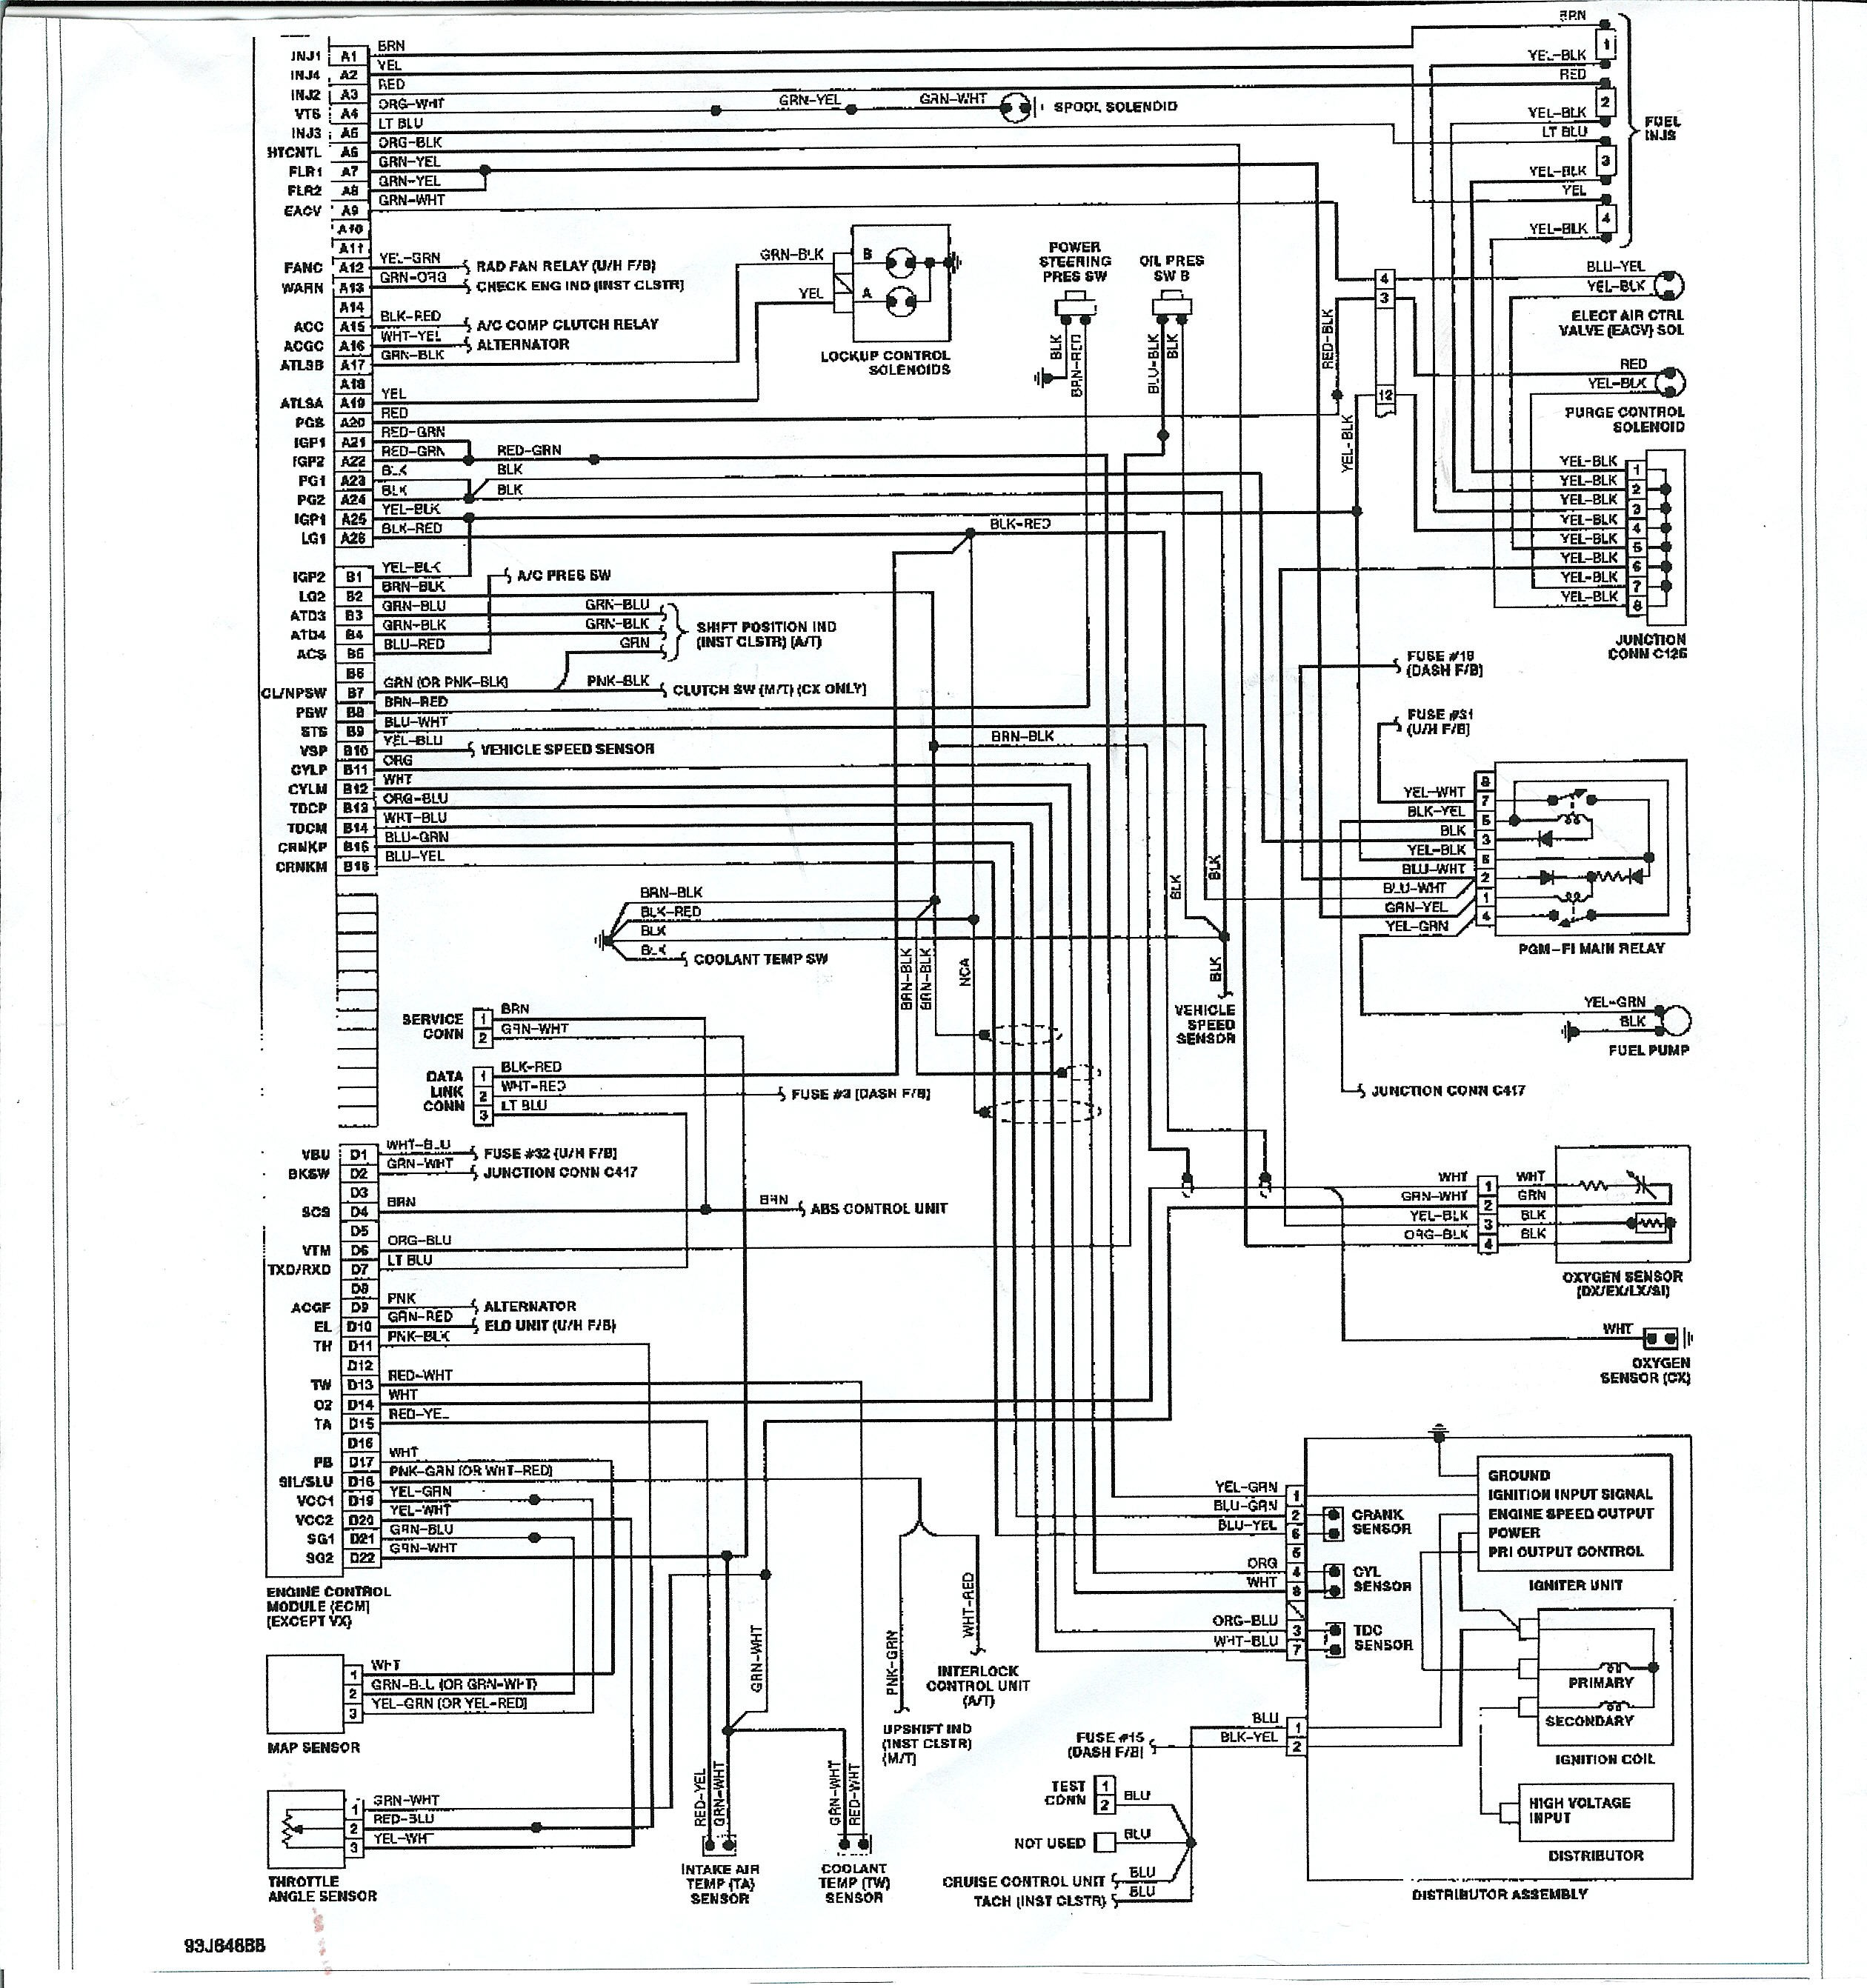 2003 Honda Civic Engine Diagram Awesome Wiring Diagram Honda Civic  Everything You Need to Of 2003